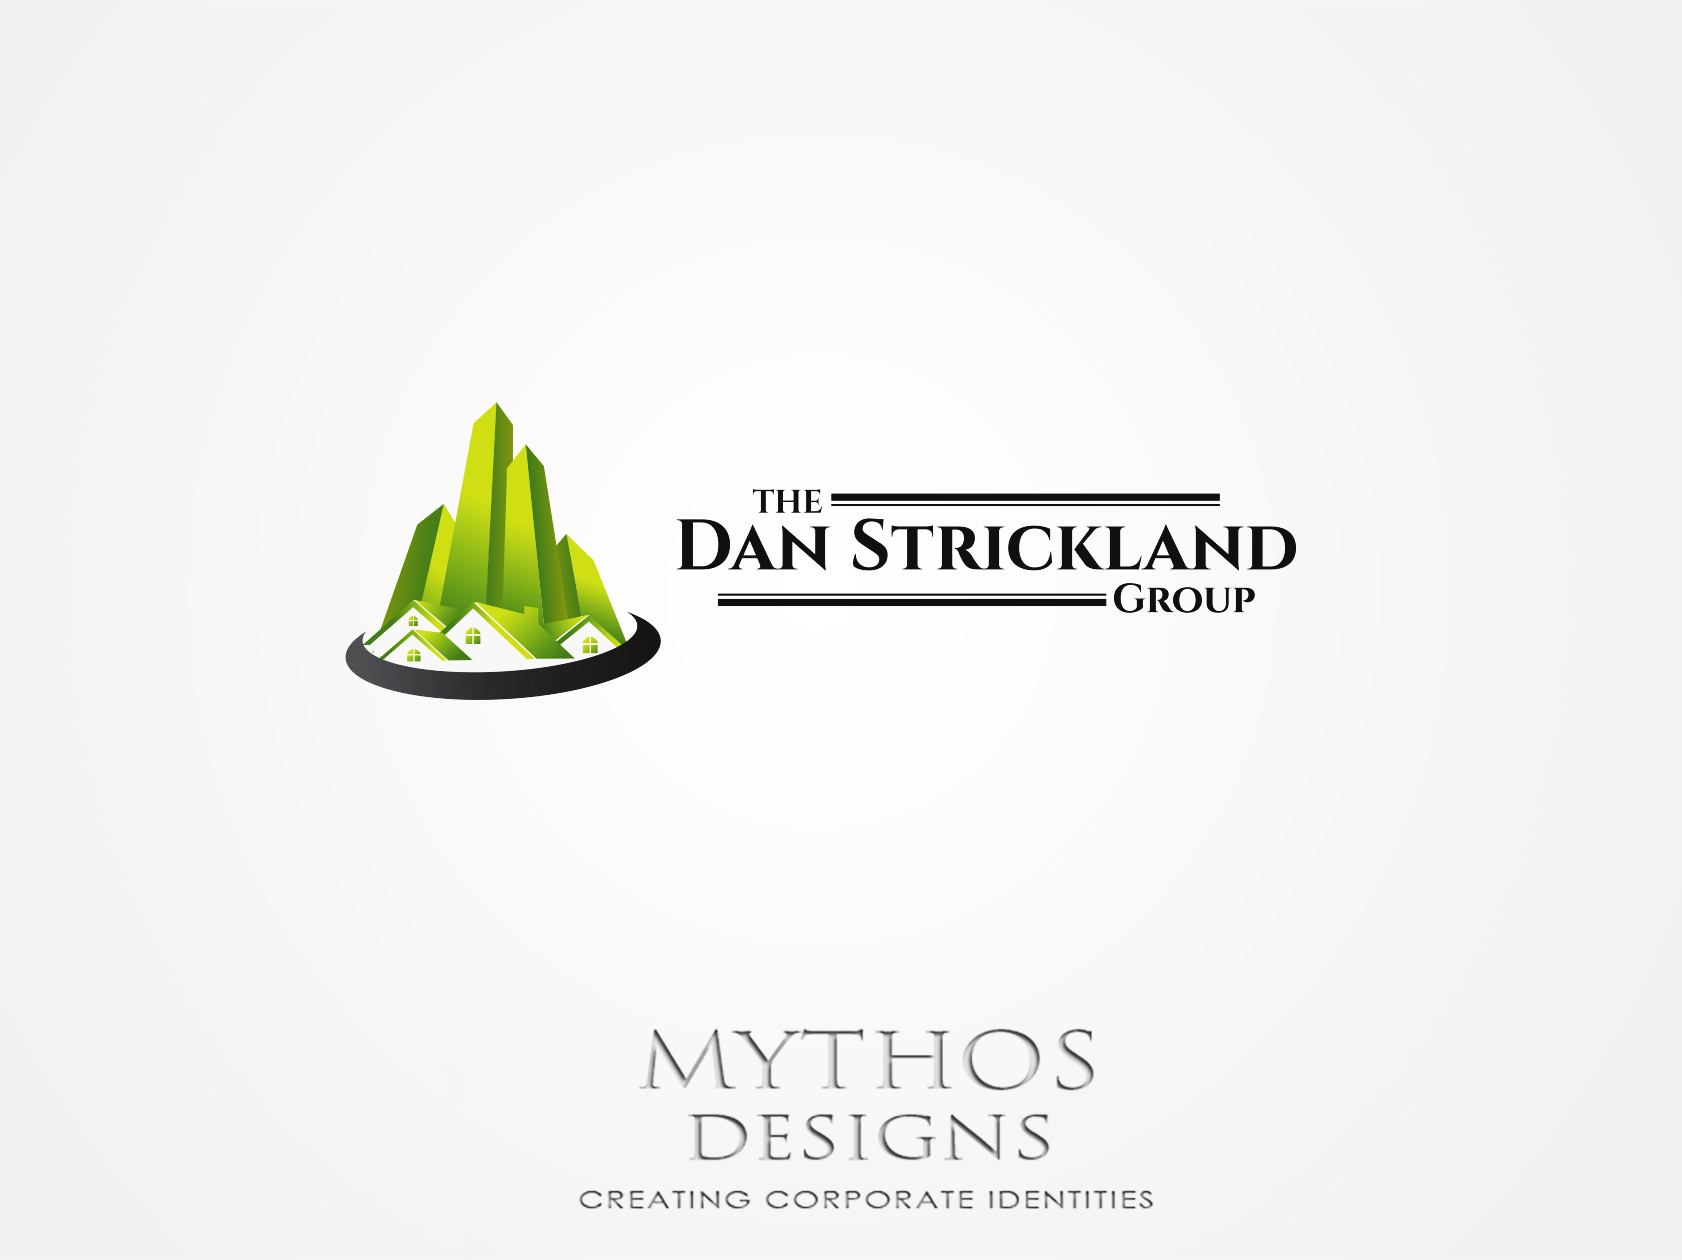 Logo Design by Mythos Designs - Entry No. 15 in the Logo Design Contest Creative Logo Design for The Dan Strickland Group.